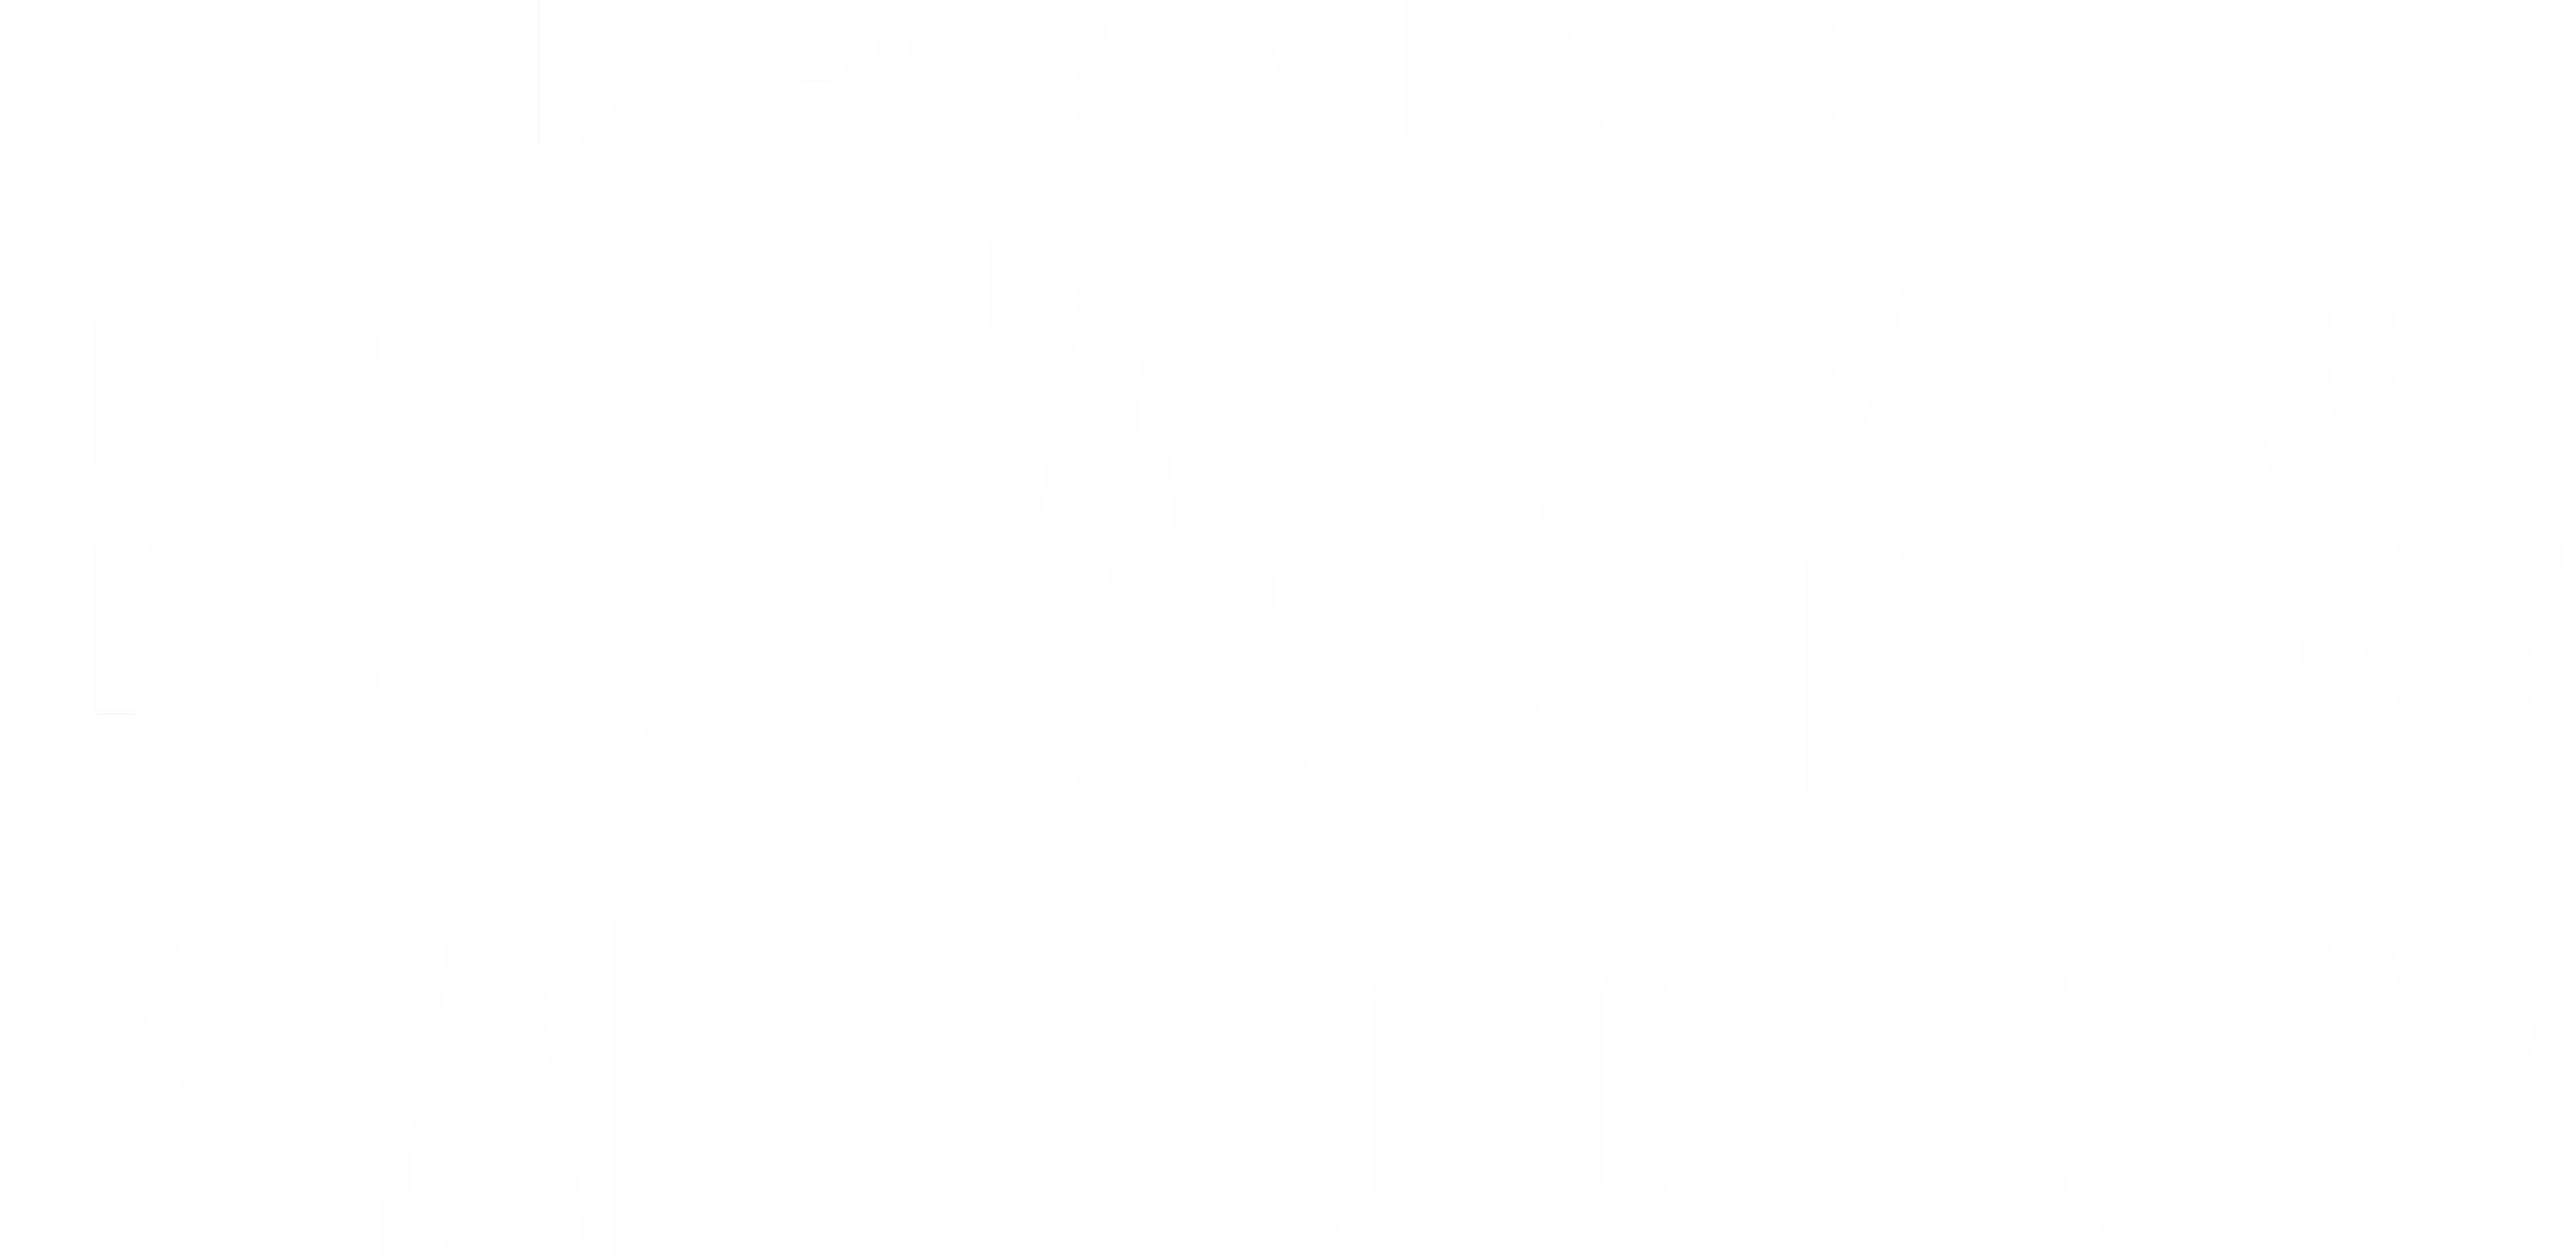 Department of Botany and Plant Ecology